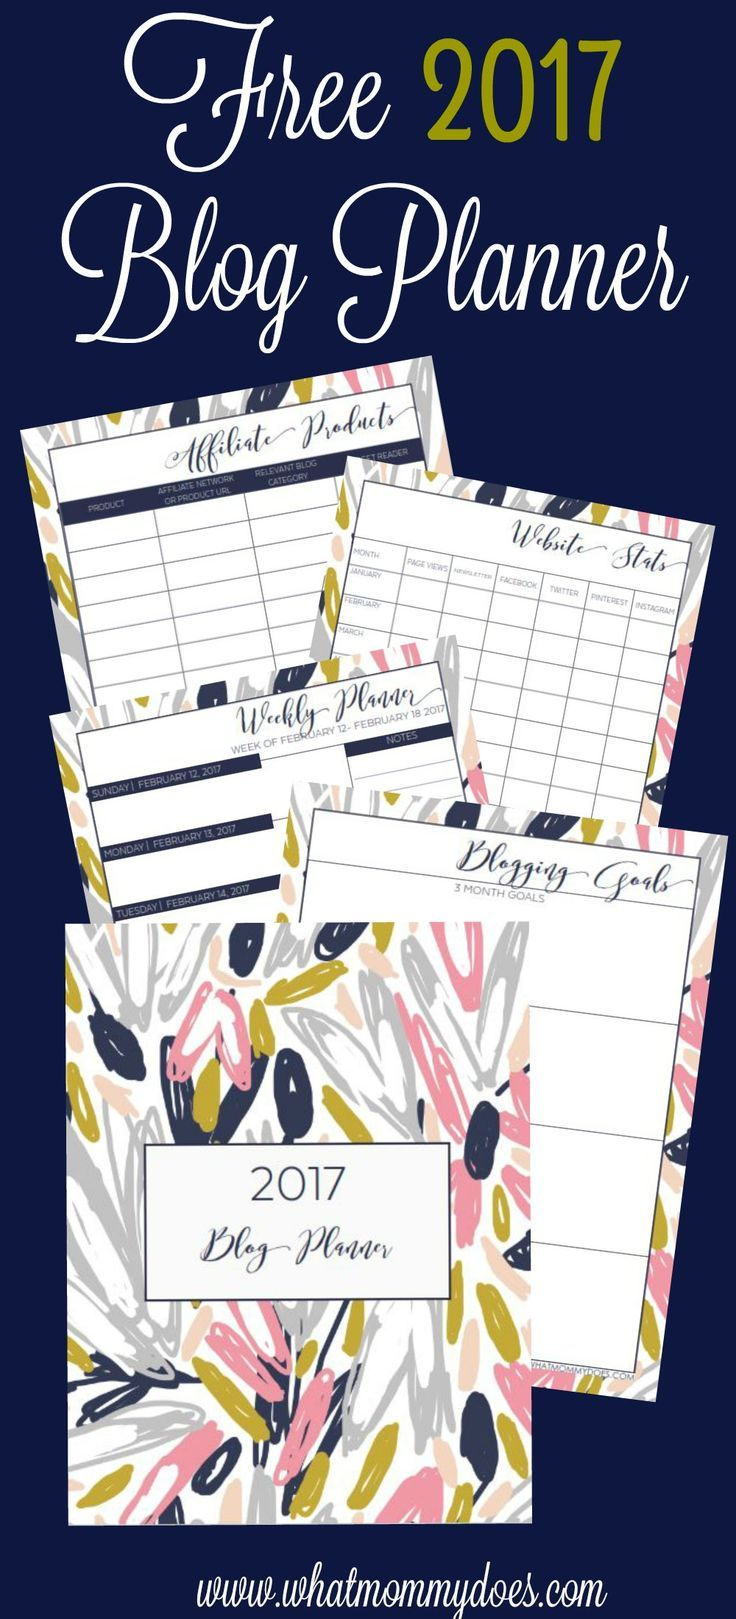 I've been looking for something like this to plan 2017! I can't believe it's free!!!   Free Printable 2017 Blog Planner contains: weekly planner pages, blank monthly calendar, blog goal setting page, blog post idea + website stats tracker, affiliate product listing & more! I already downloaded mine!